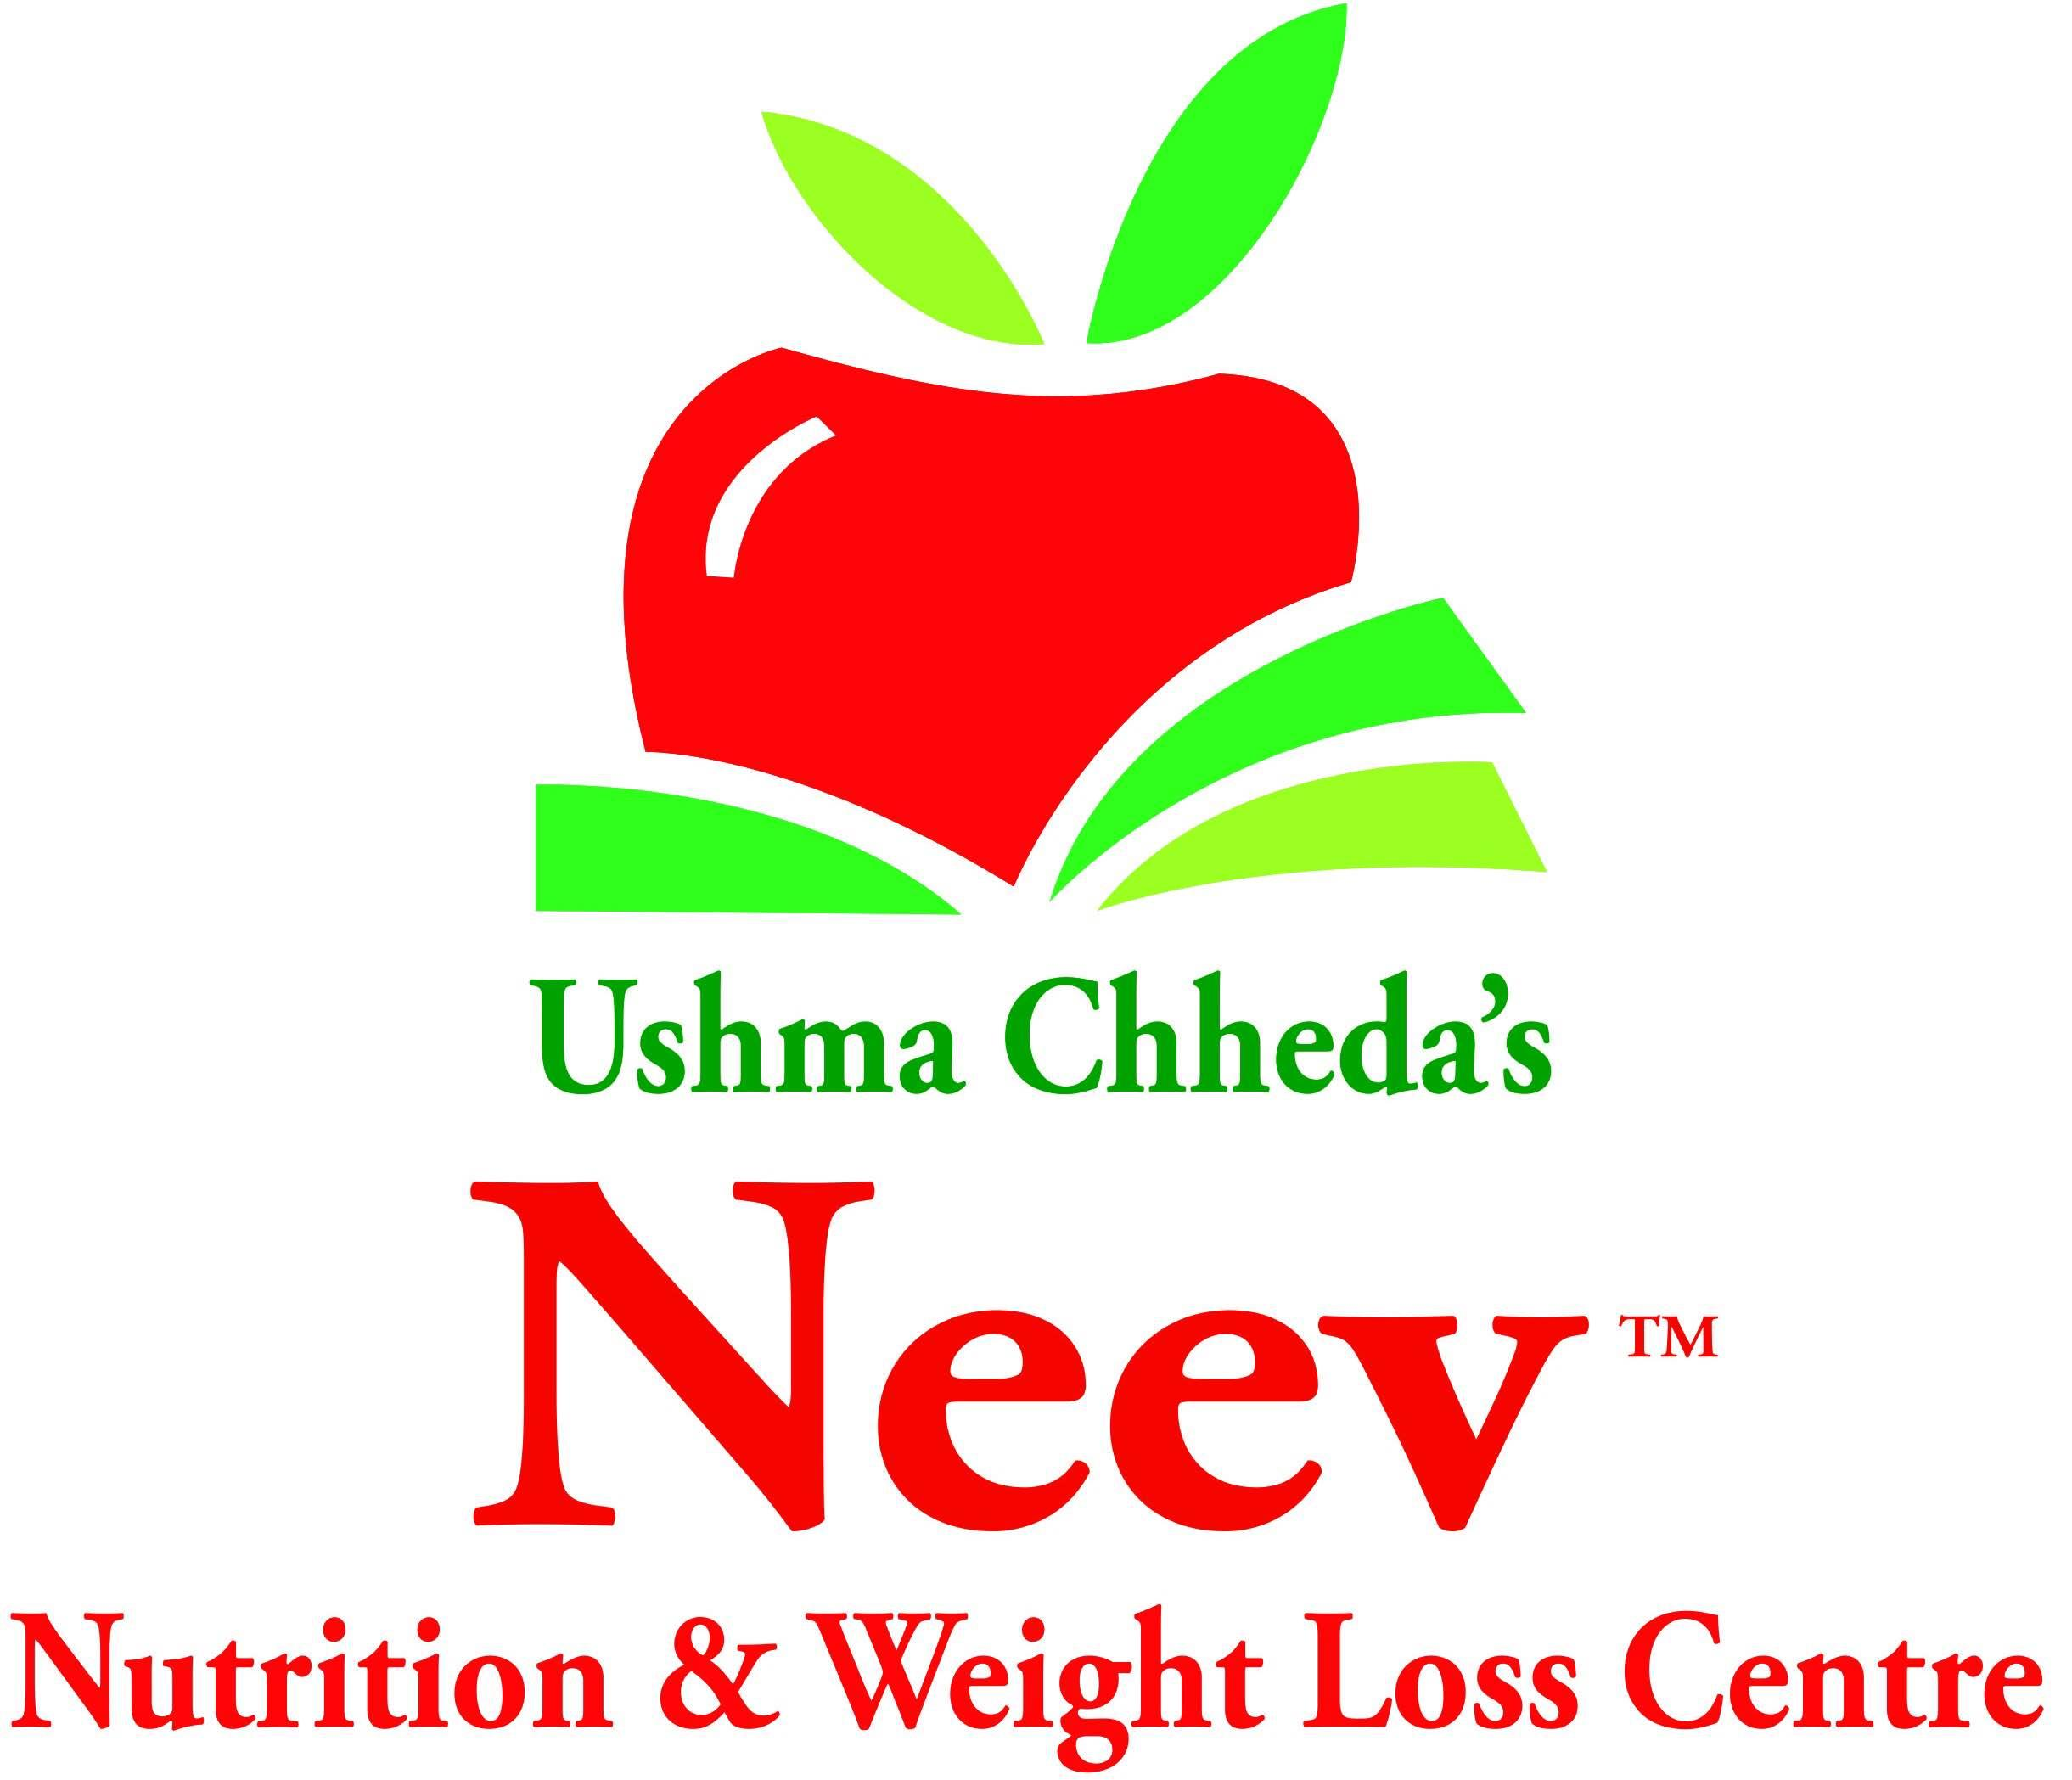 Neev Nutrition & Weight Loss Center